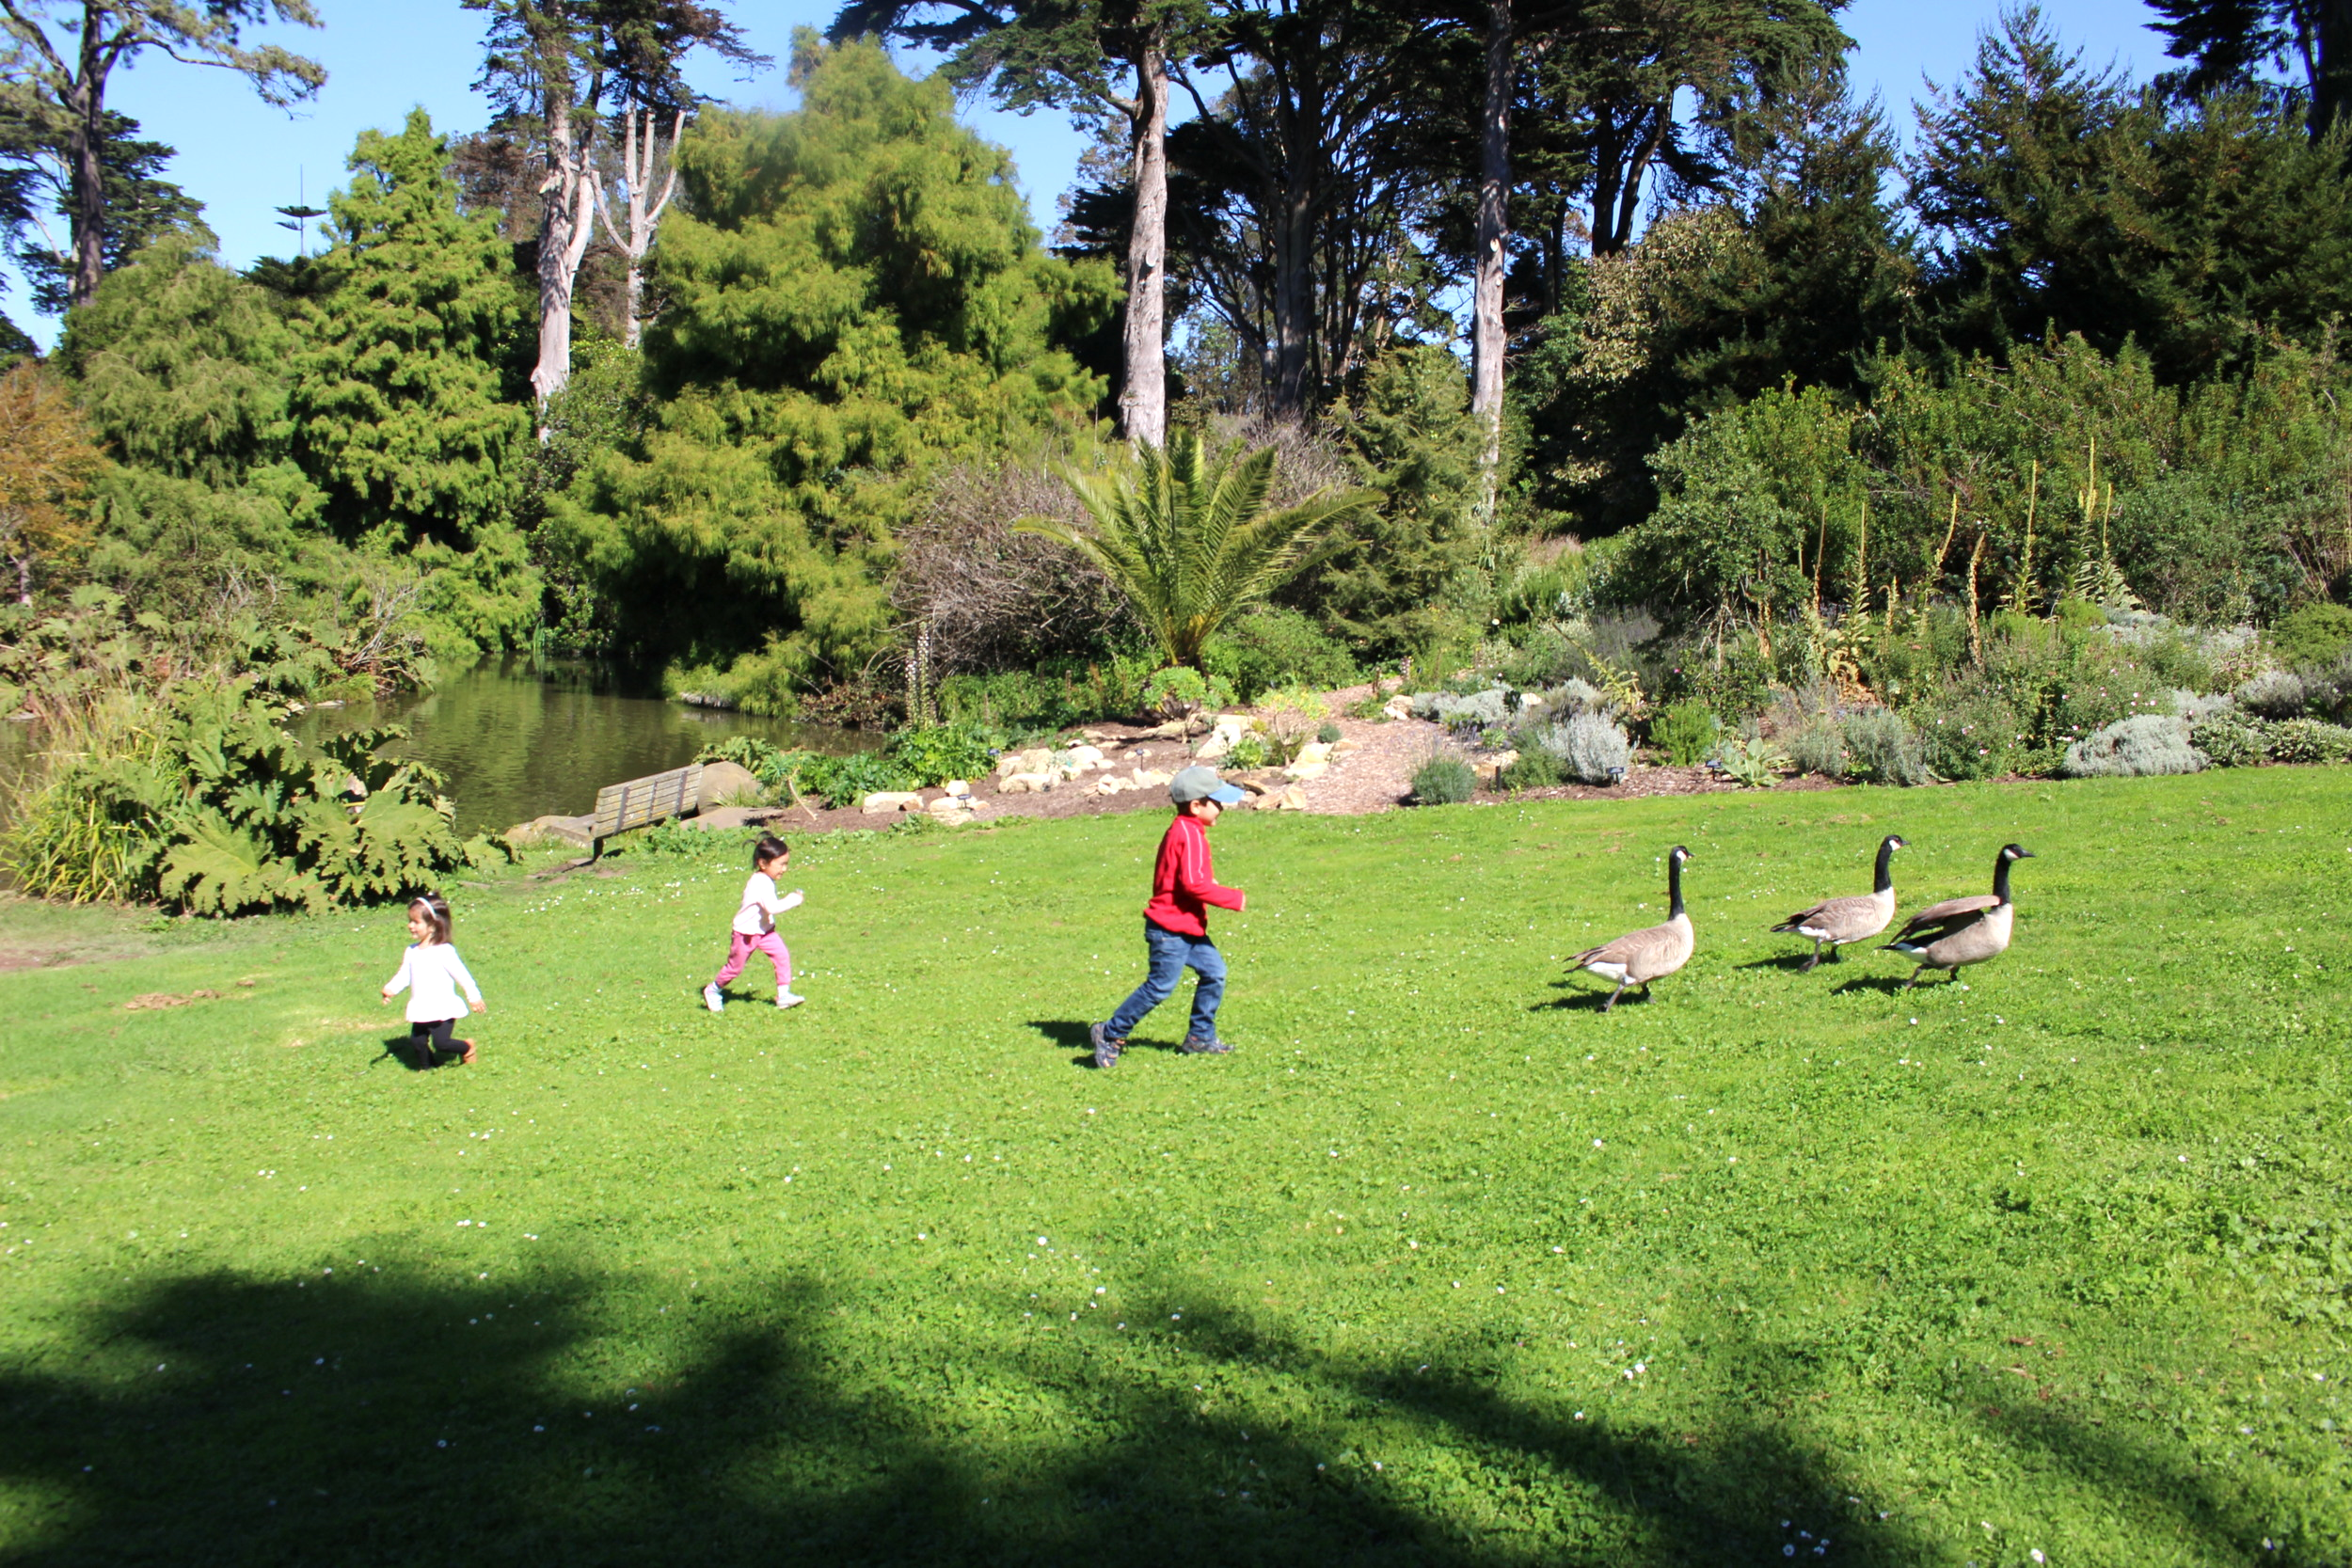 kids chasing the geese.